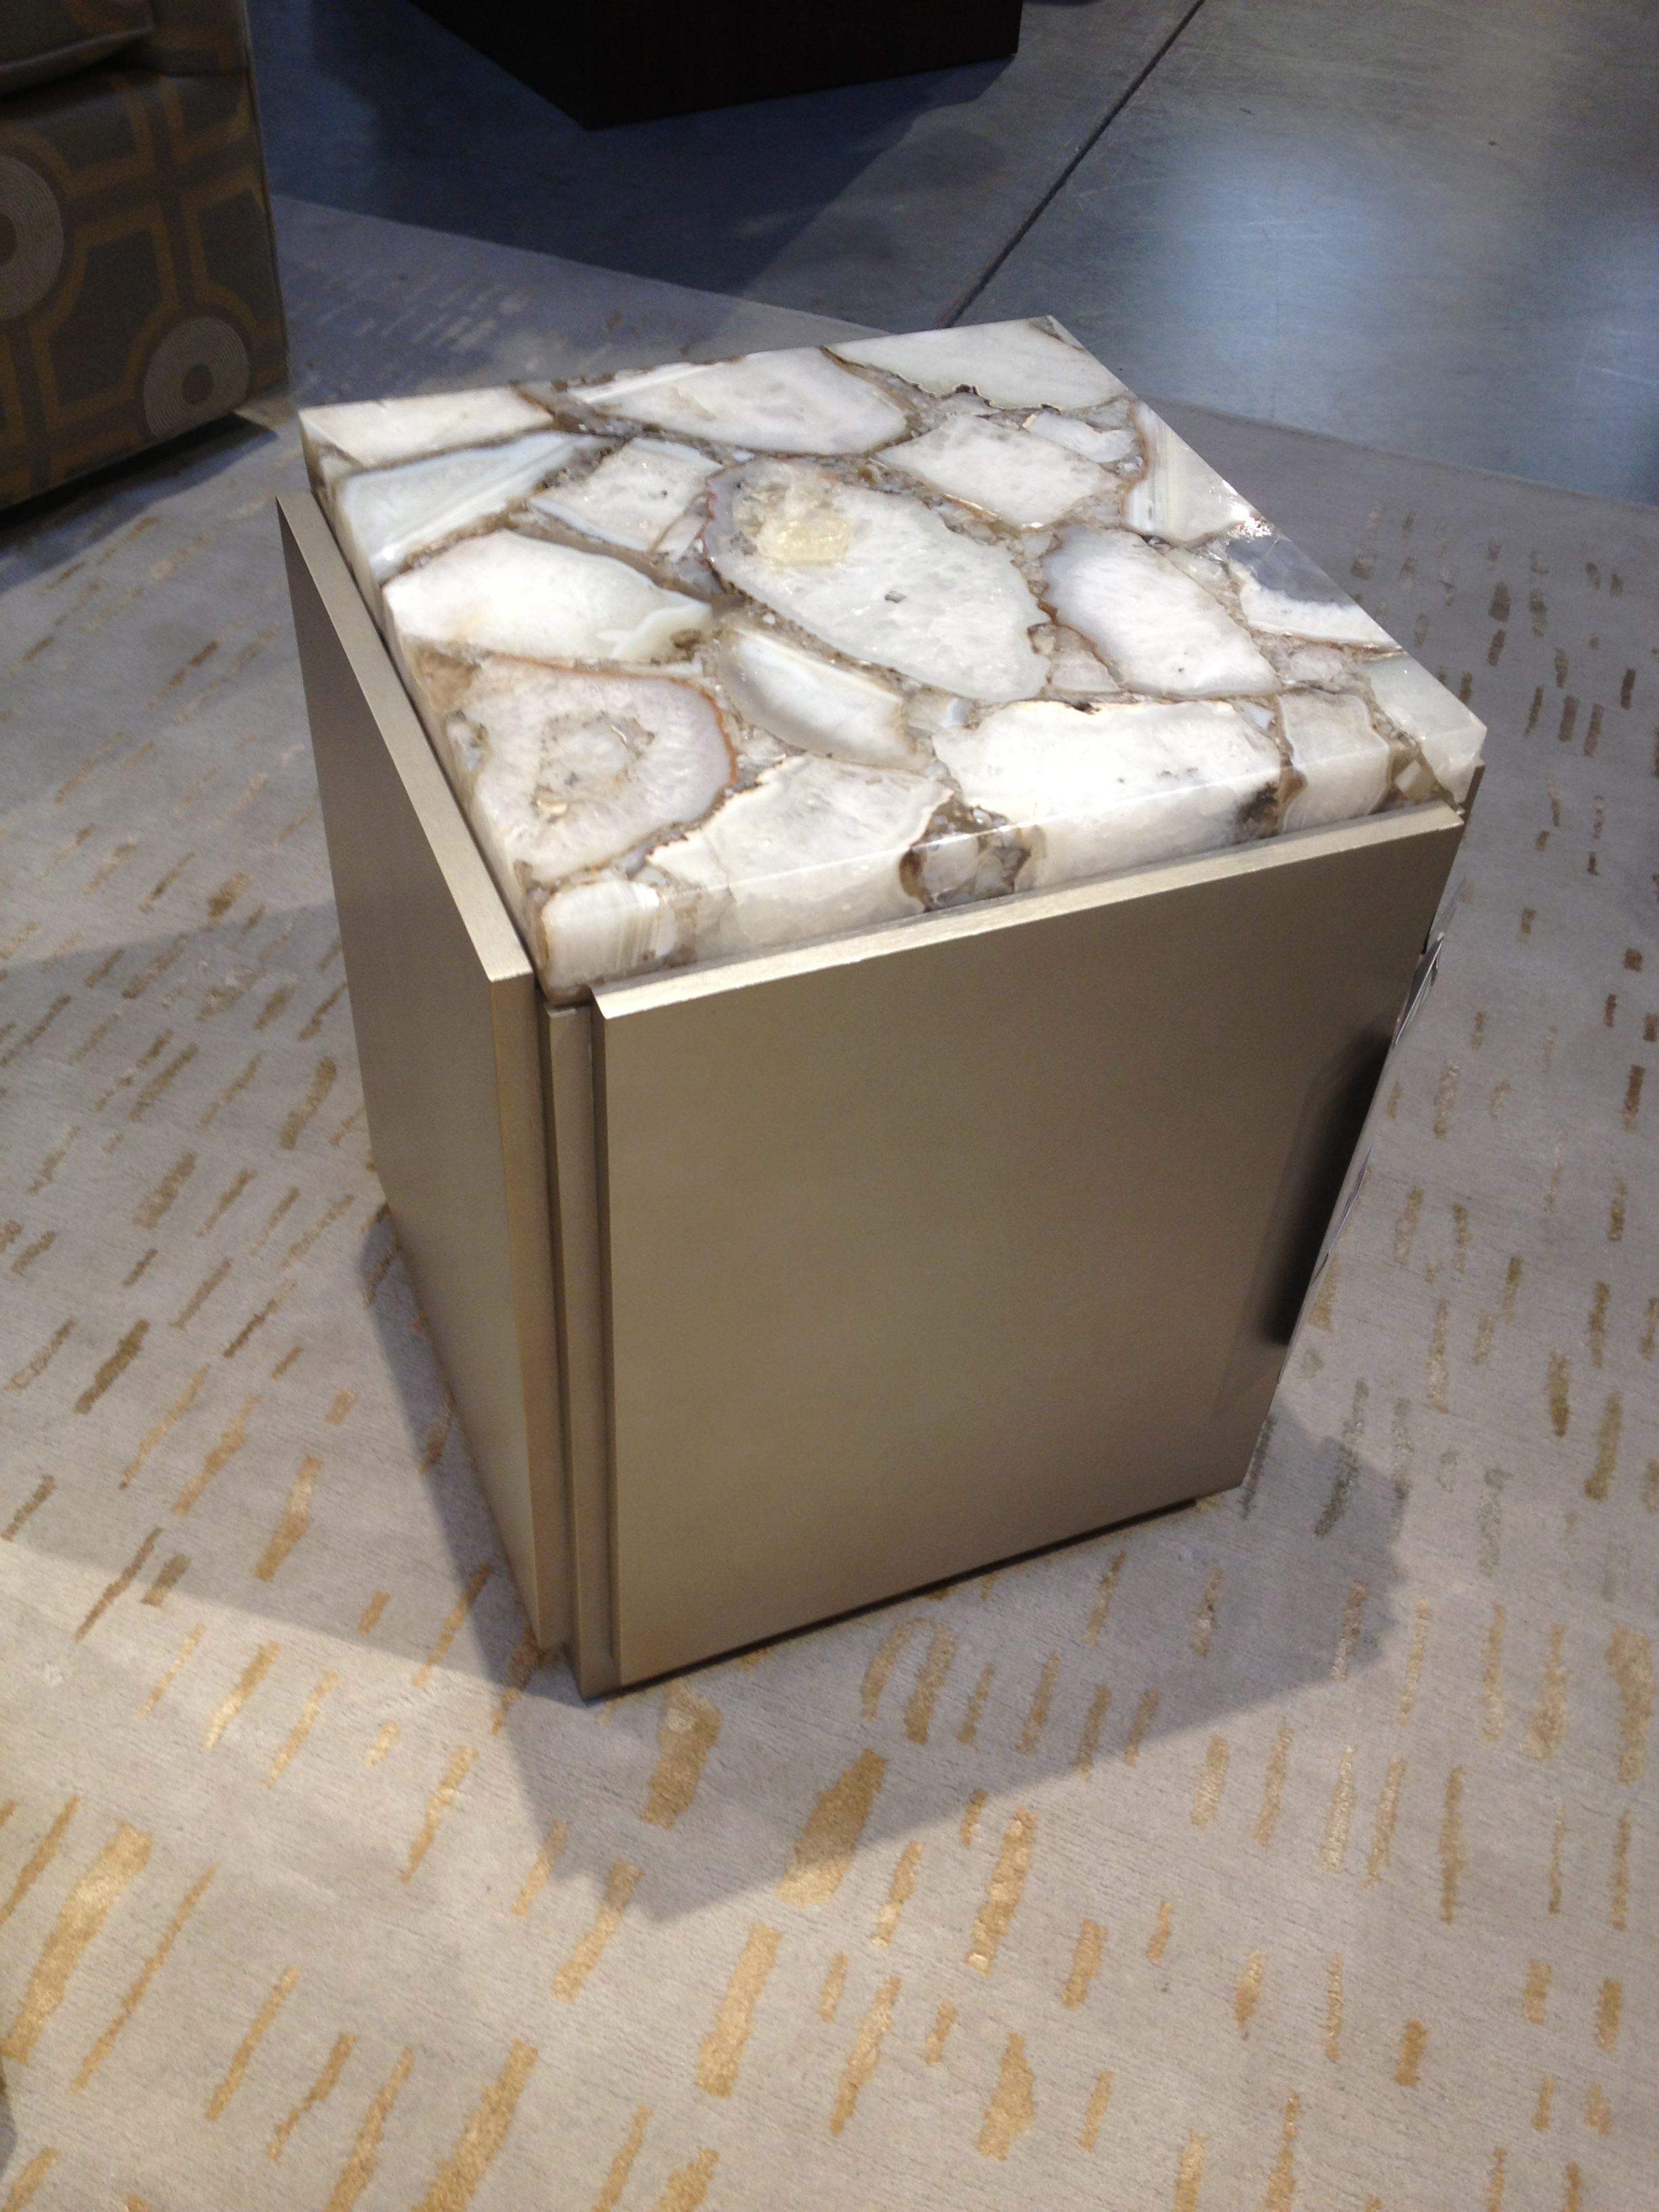 KDR also has this fantastic side table which yells interest.